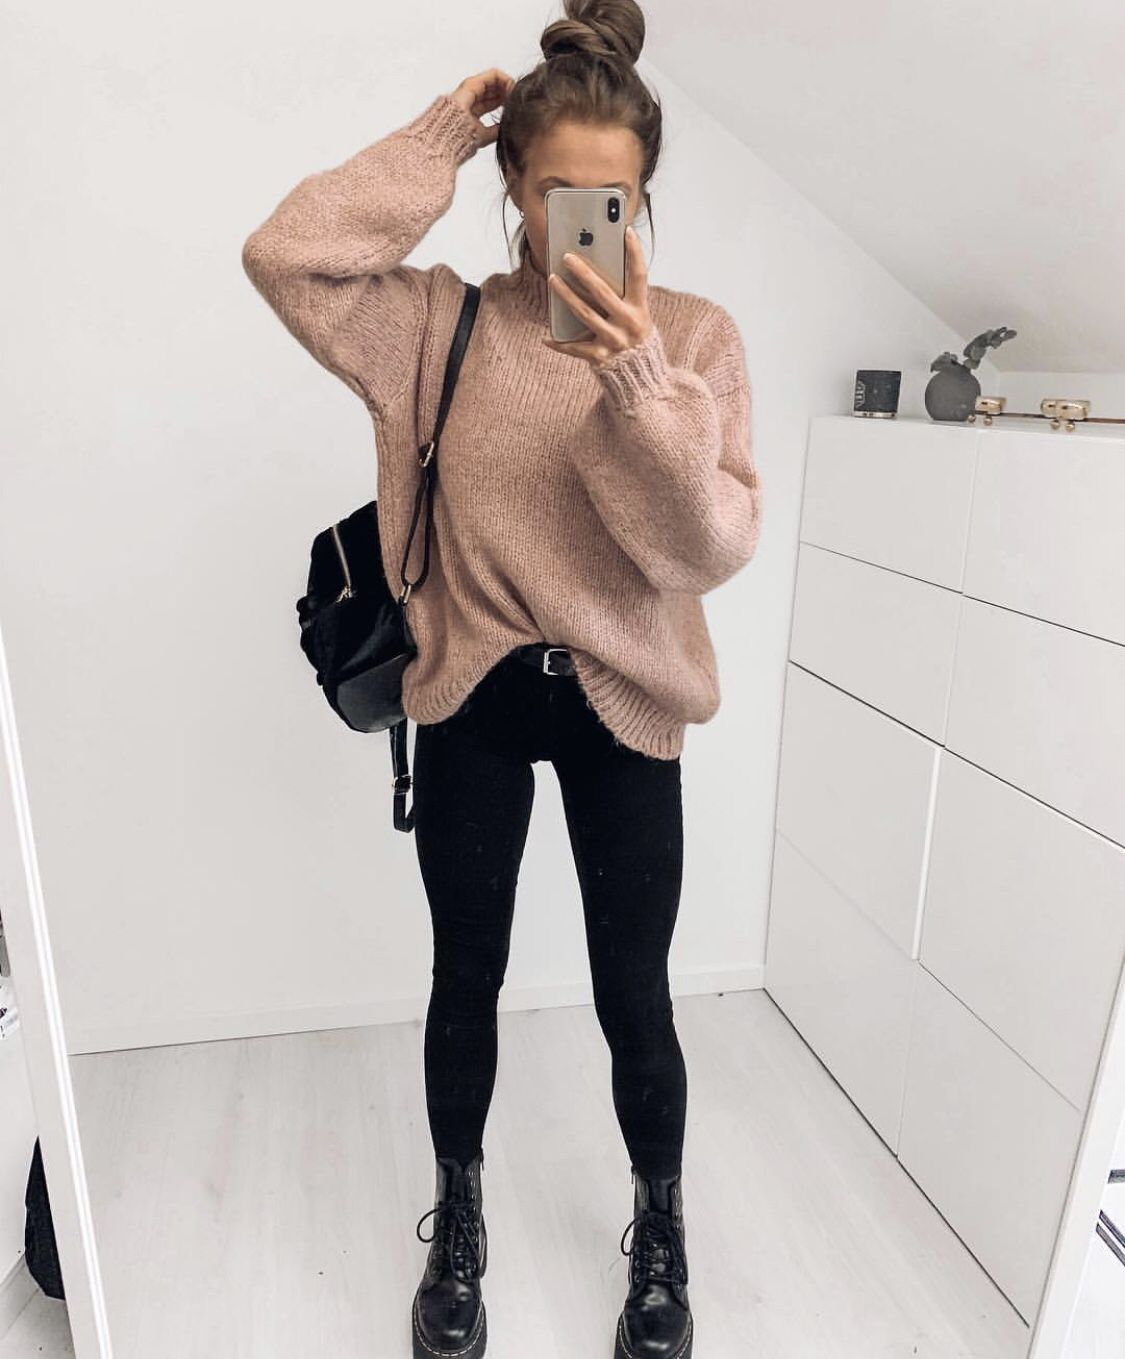 Pin on Outfit Styles (OOTD)